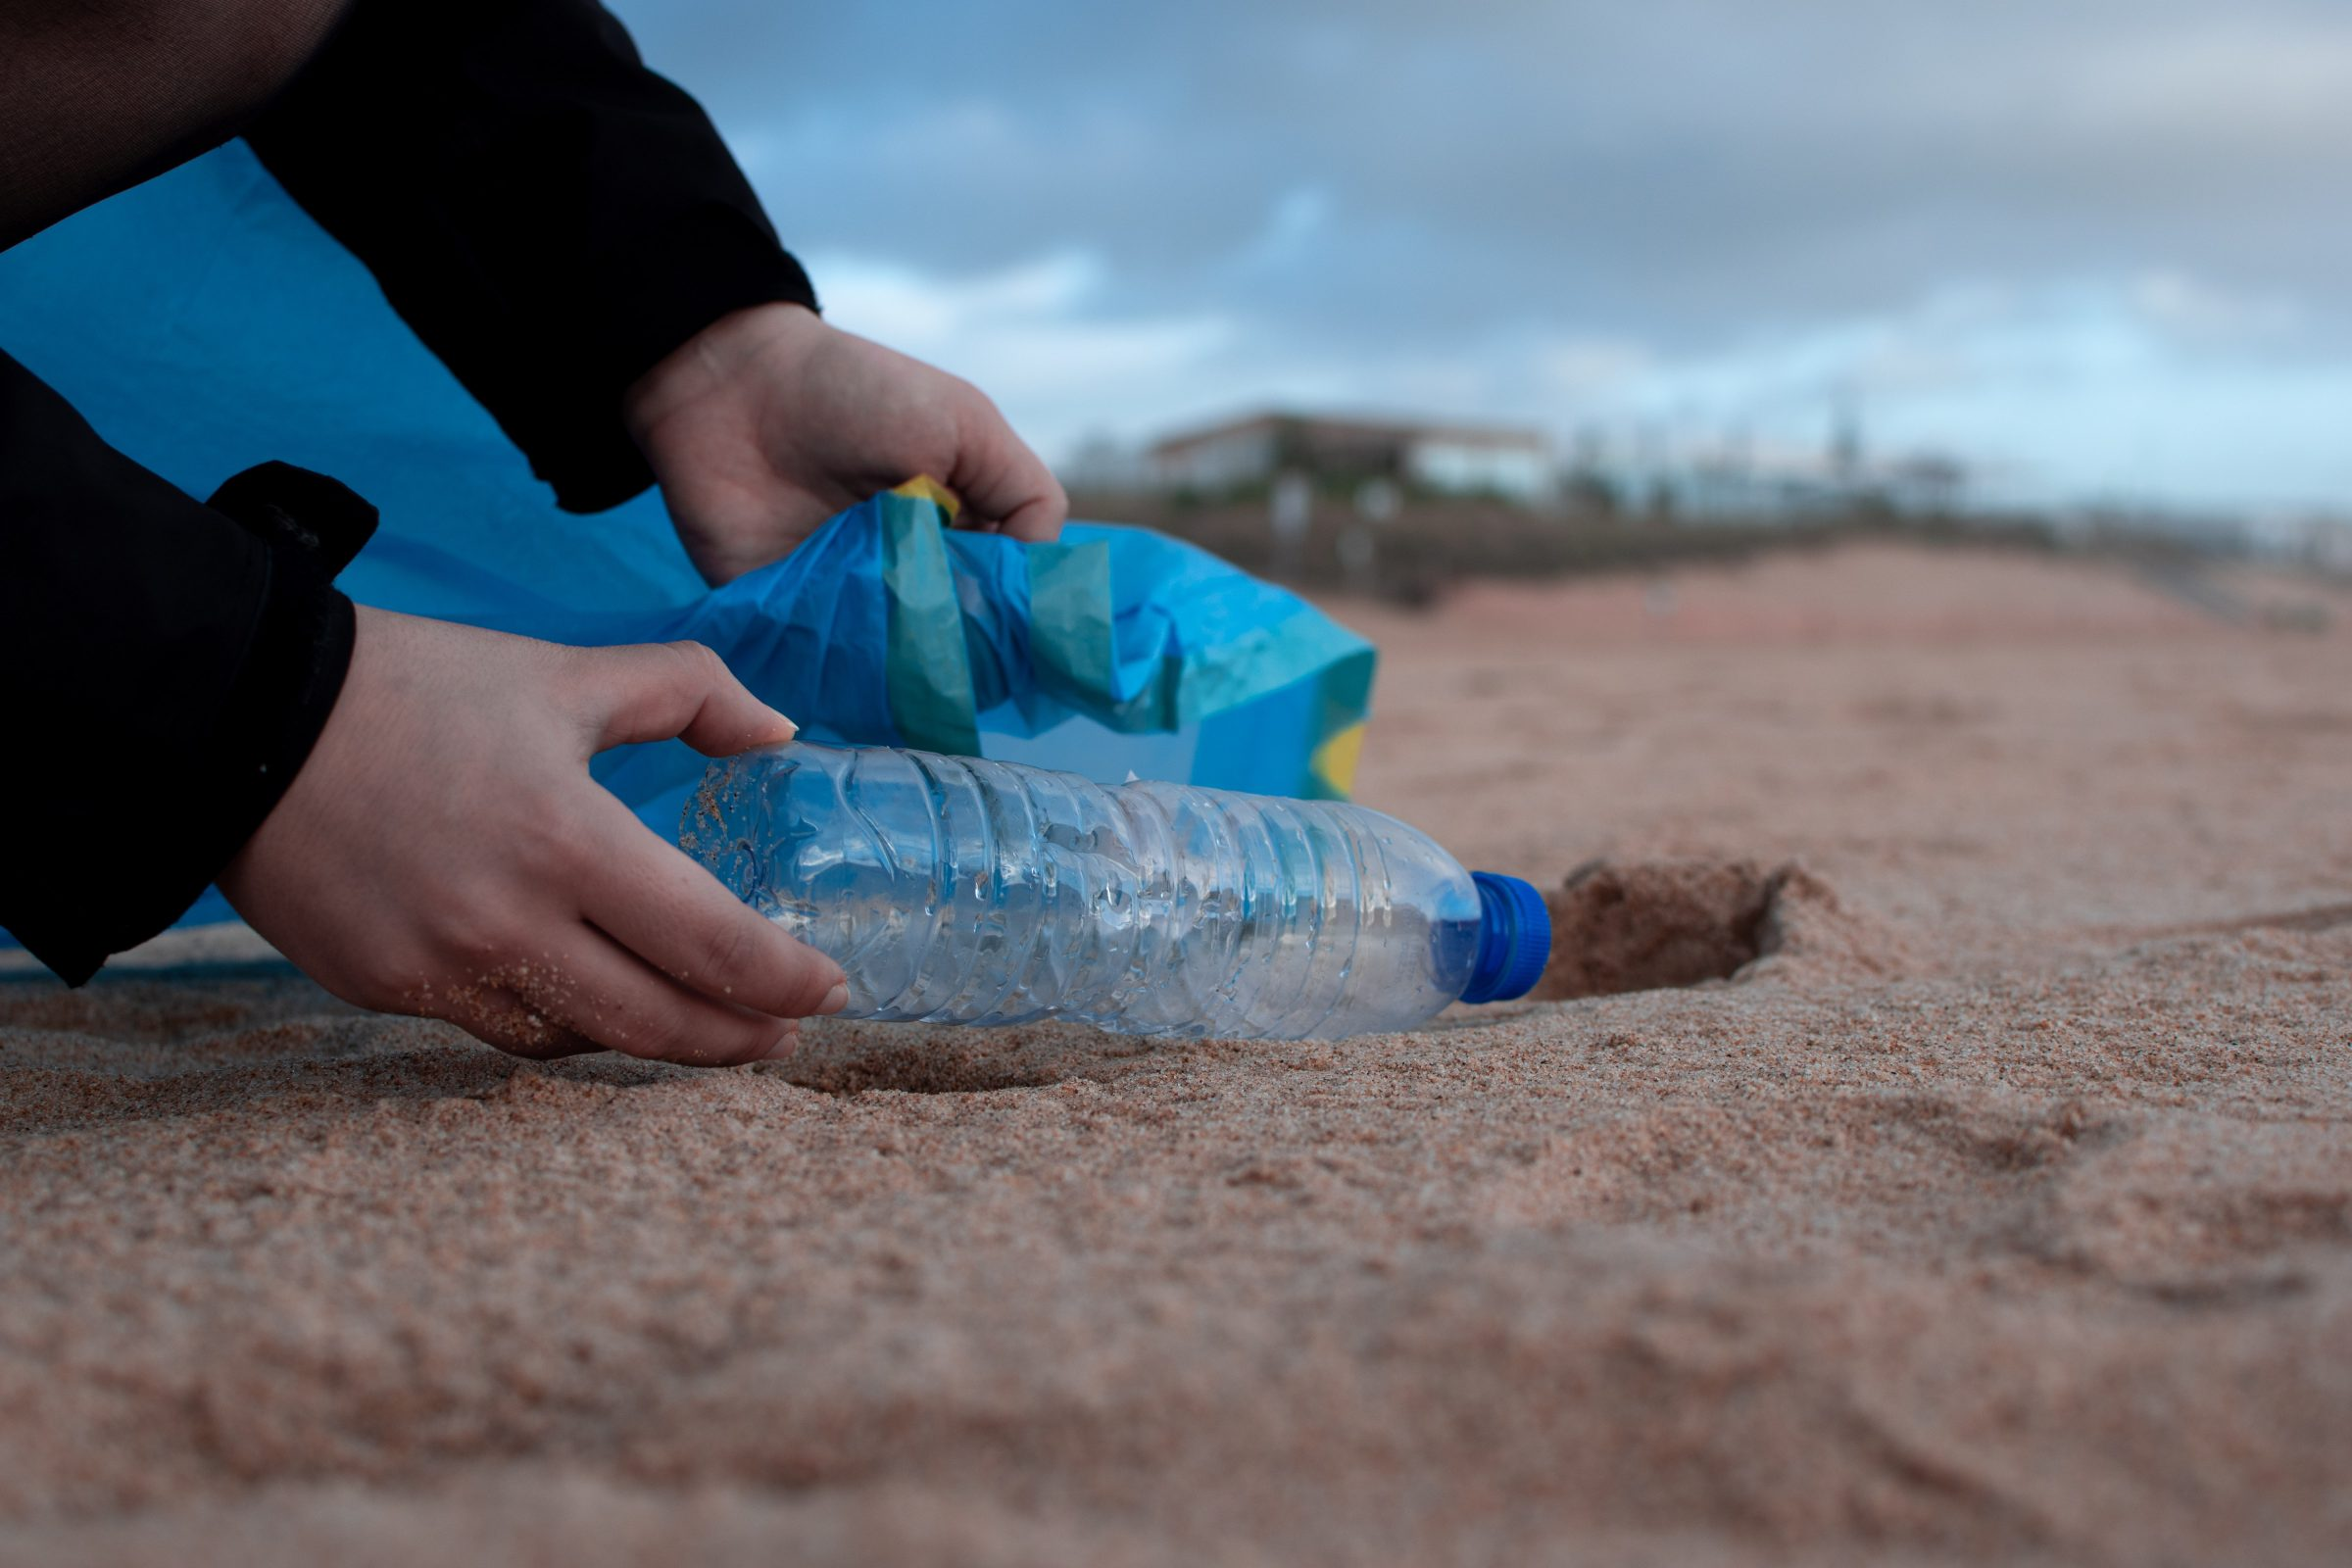 Picking up a bottle of rubbish on a beach